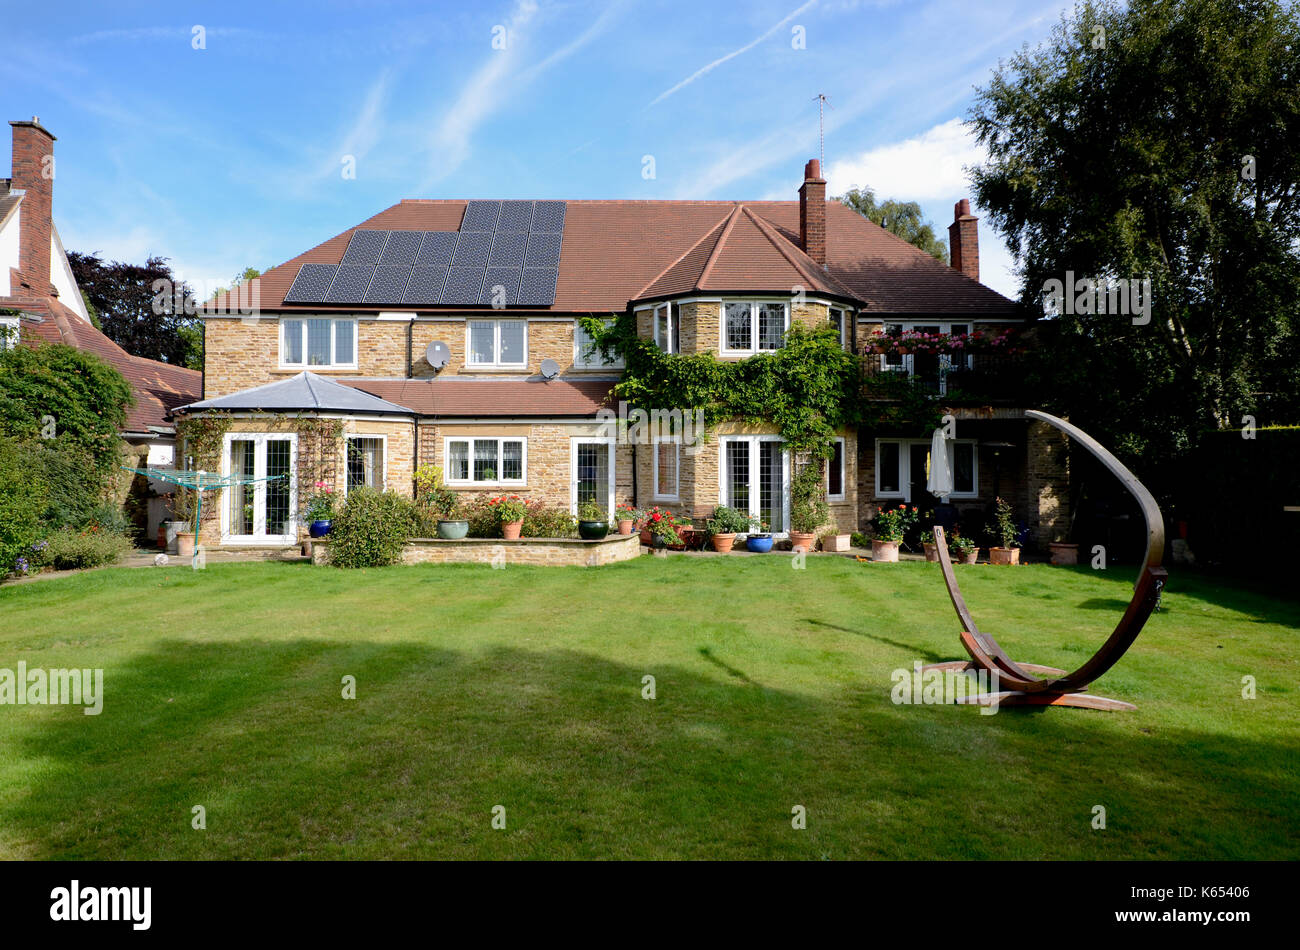 Solar panels on executive luxury home - Stock Image